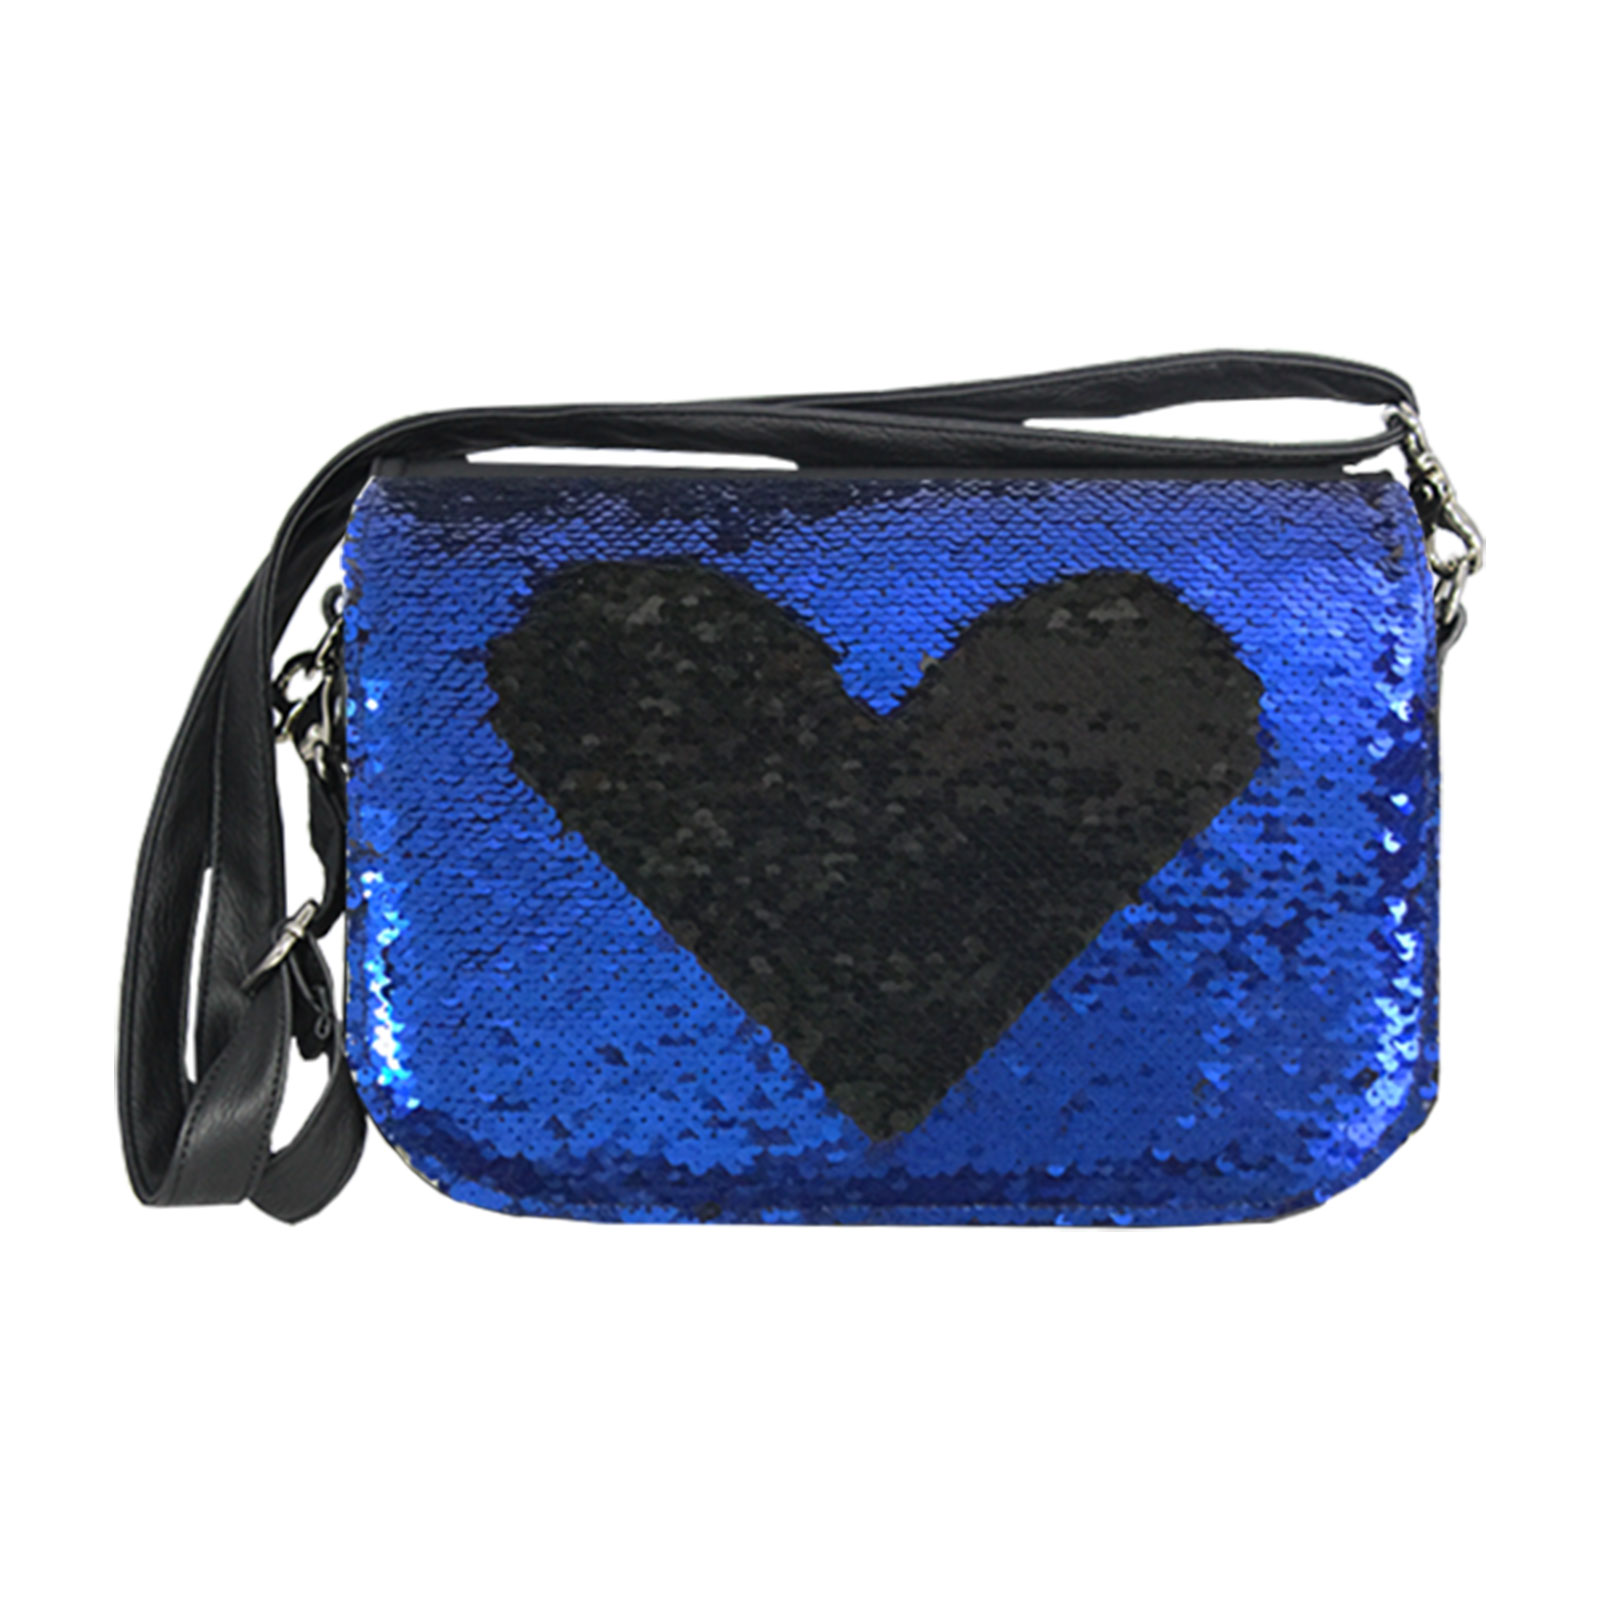 Paillettendesign in Blau mit Handtasche